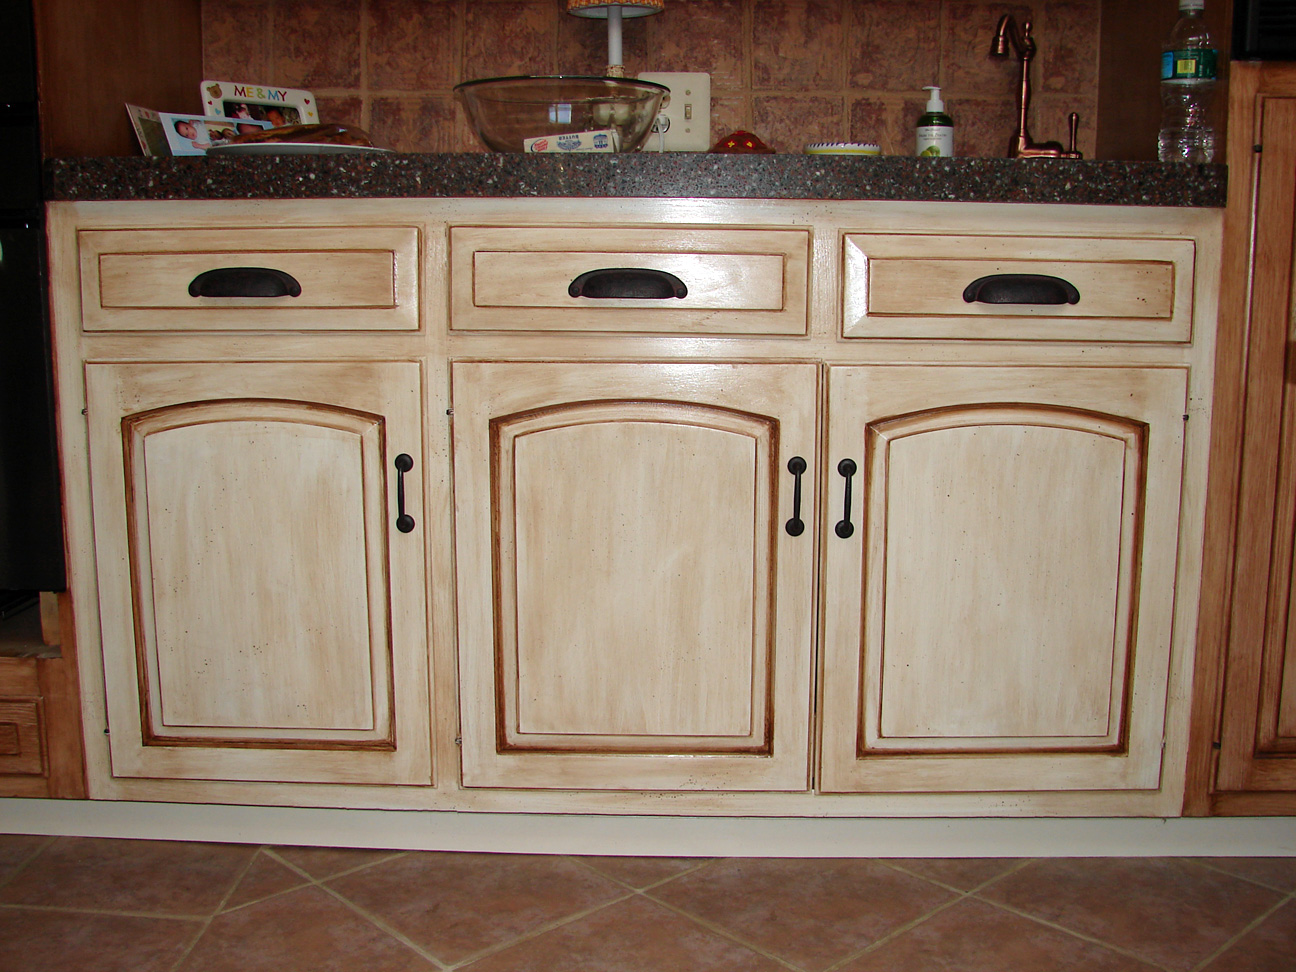 Kitchen Cabinet Images White Eyelet Curtains Decorative Effect Of Walls Furniture Cabinets